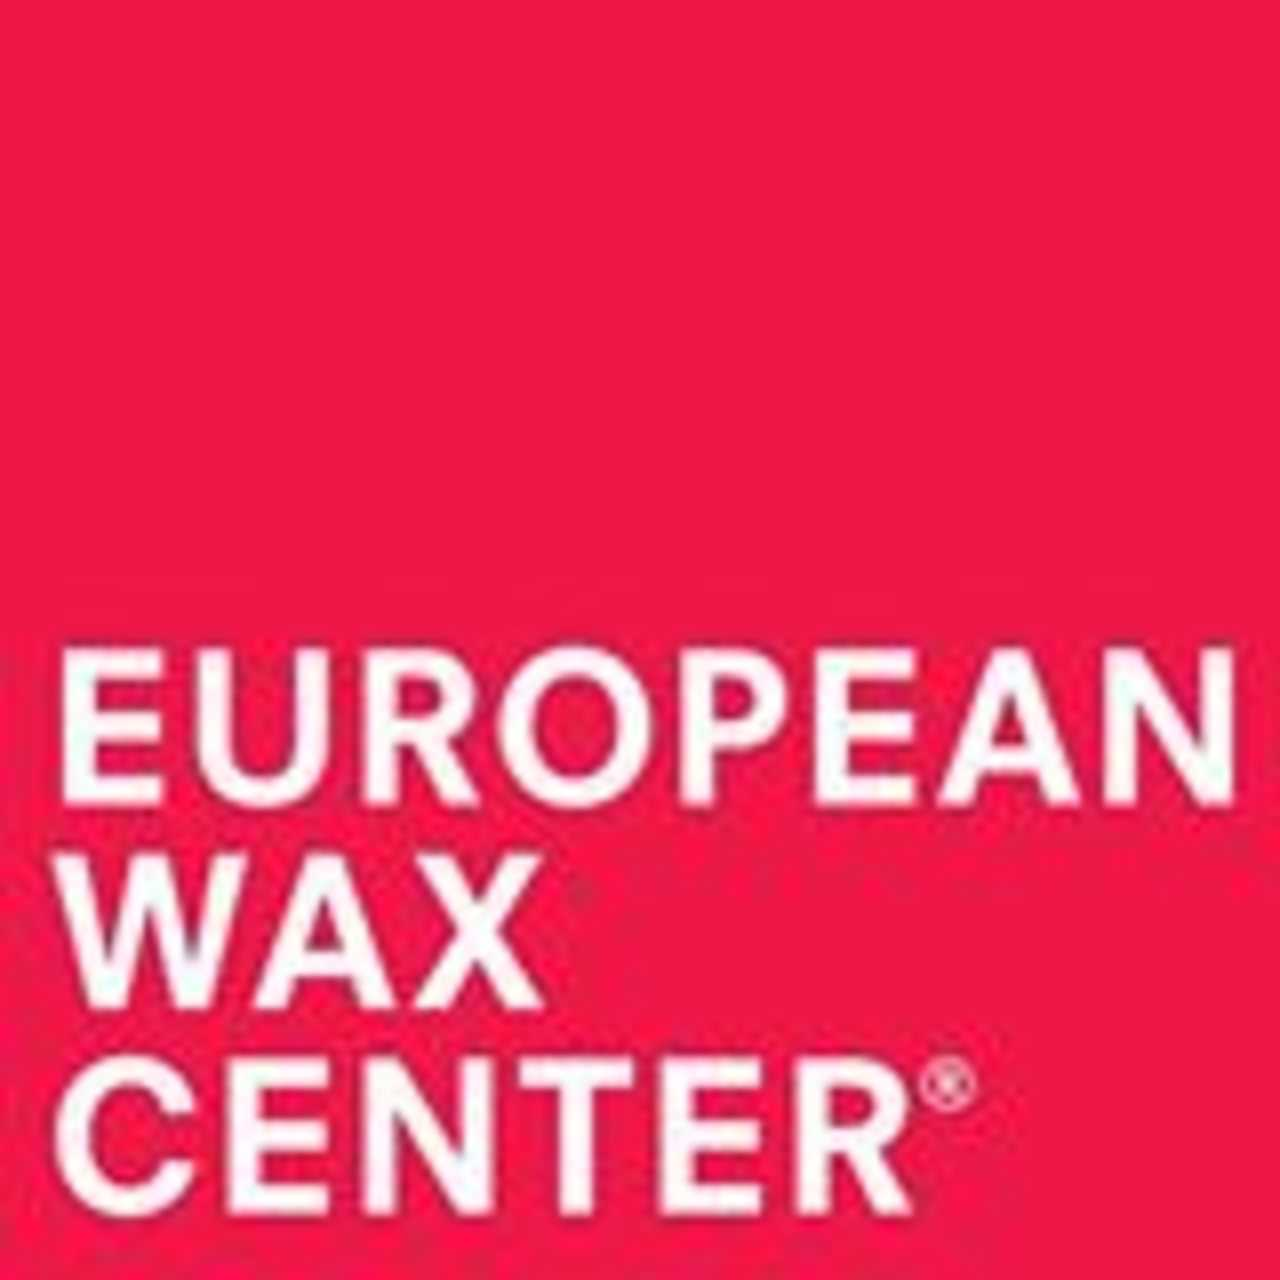 European Wax Center - Beauty and Wellness - Spa Services in Boulder CO